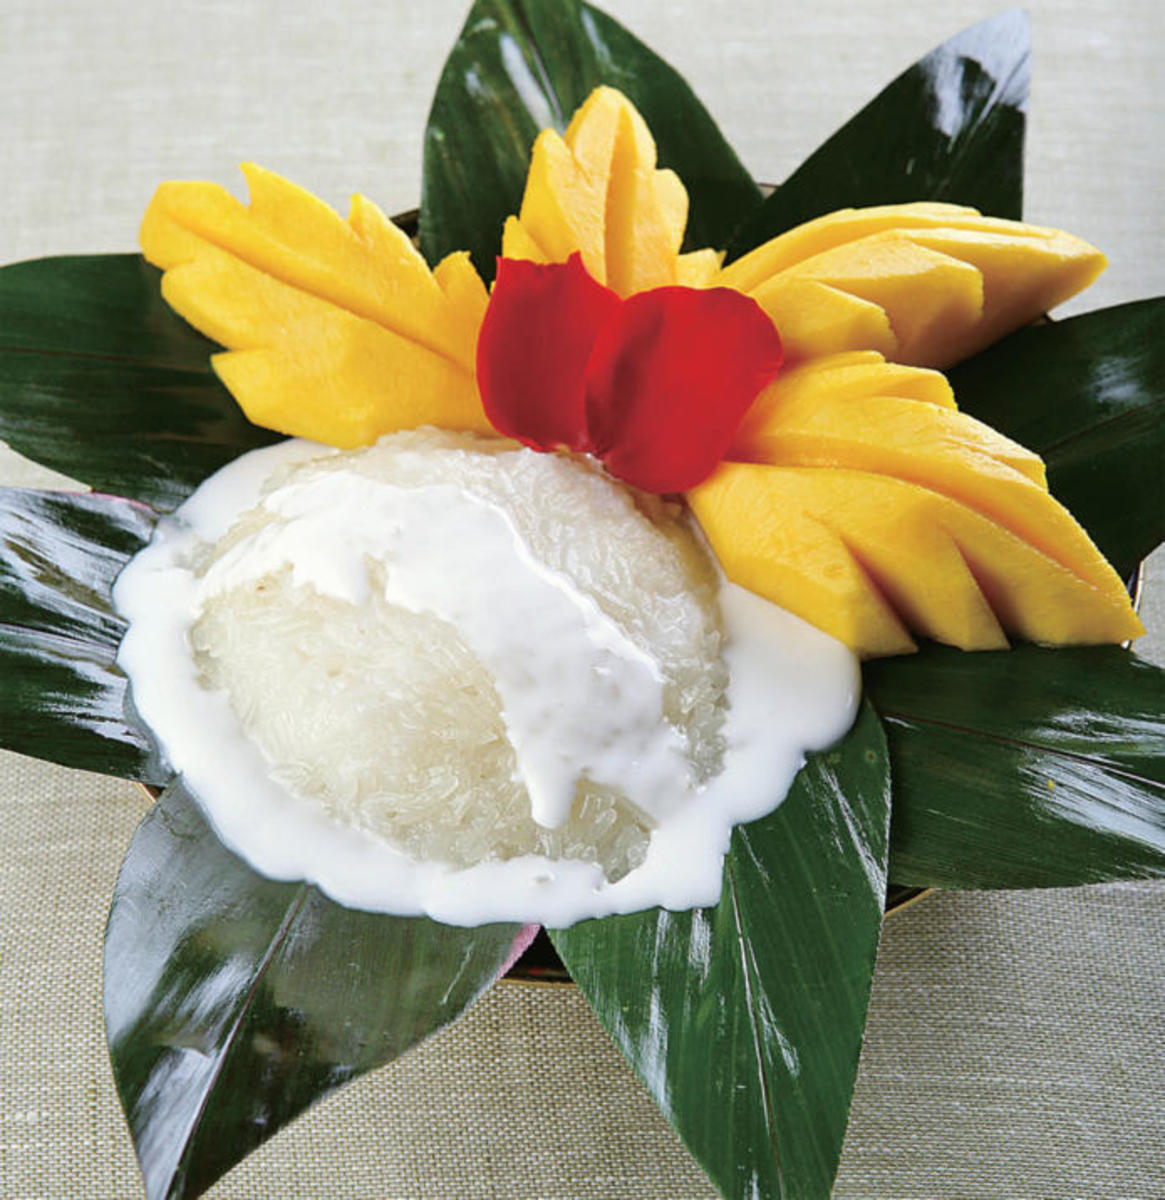 Delicious coconut sticky rice with mango dessert